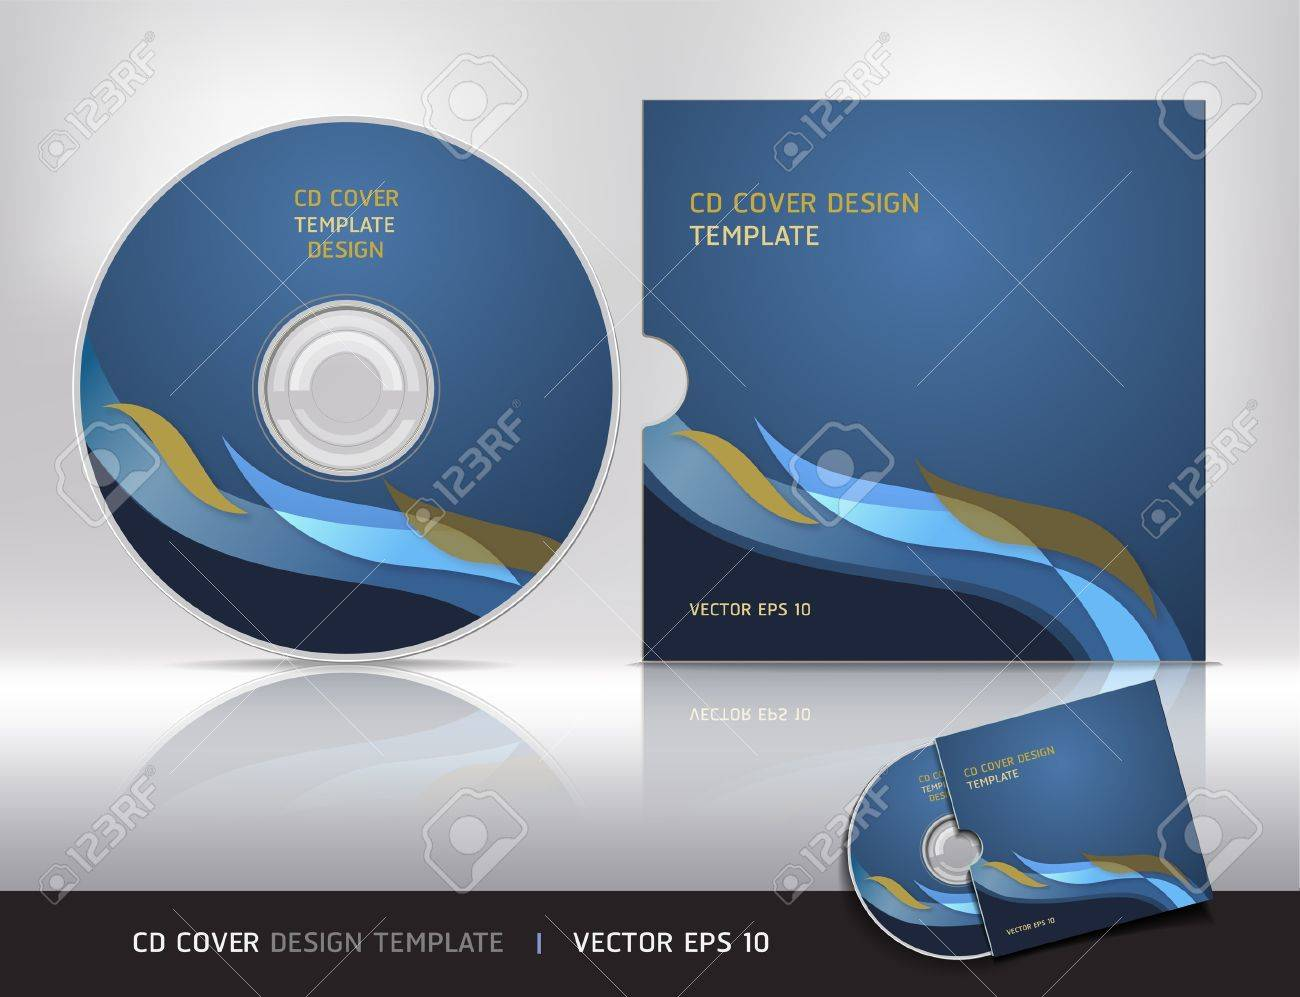 Cd box template download free vector art stock graphics amp images - Vector Cd Template Cd Cover Design Template Abstract Background Vector Illustration Illustration